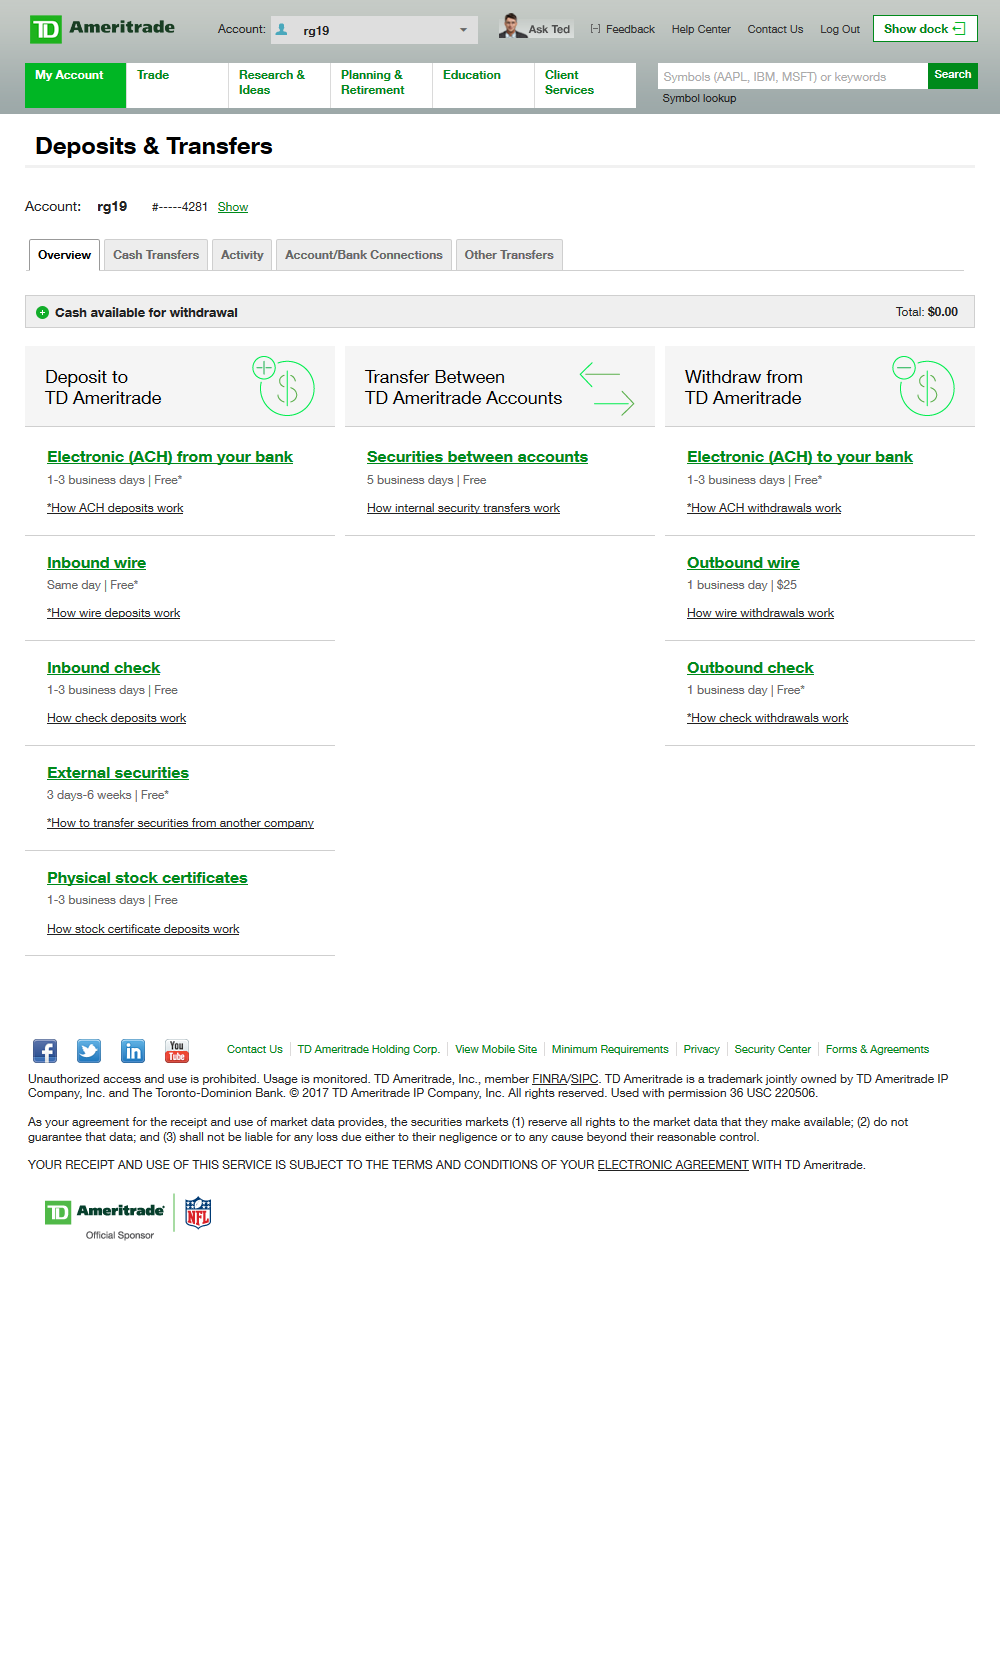 overview of how to transfer money to and from a TD Ameritrade brokerage account